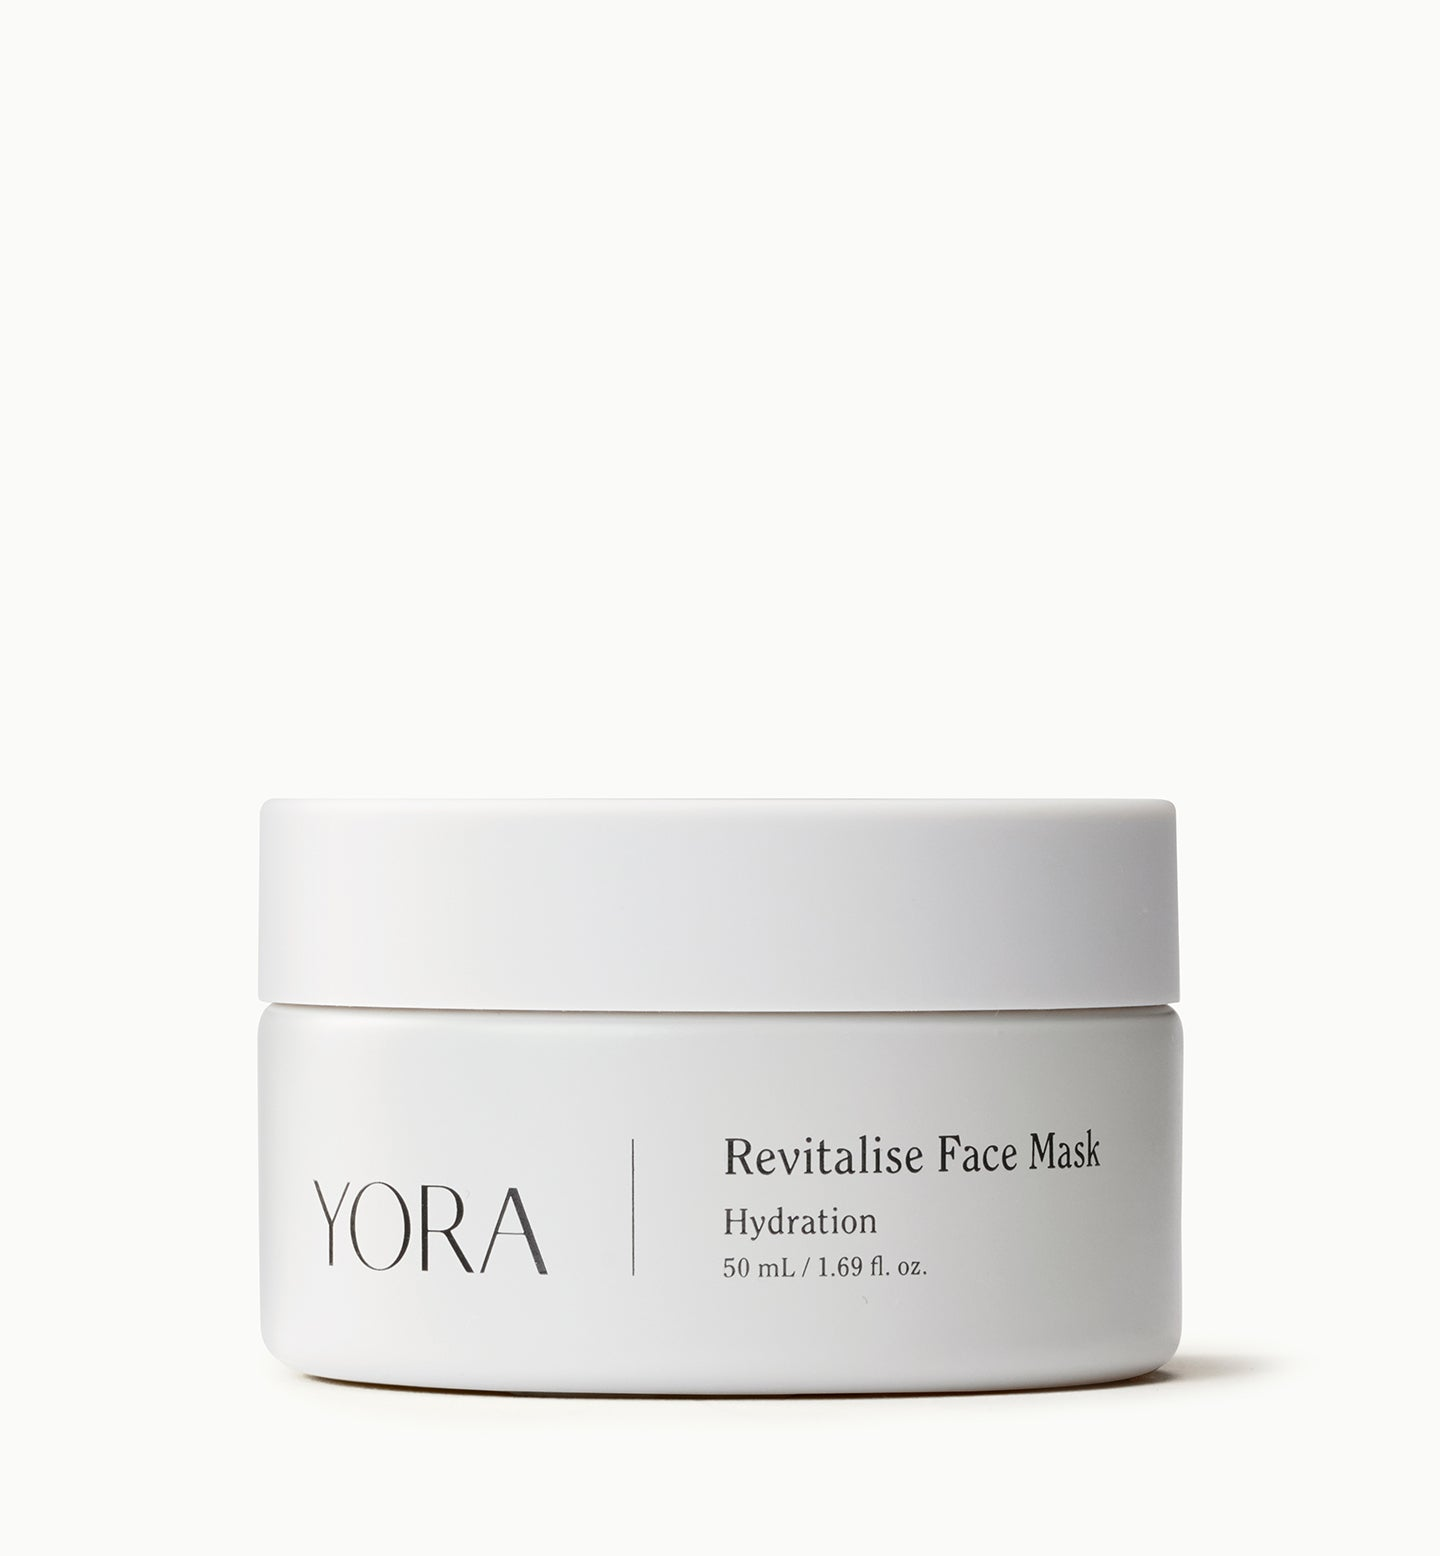 YORA Revitalise Face Mask